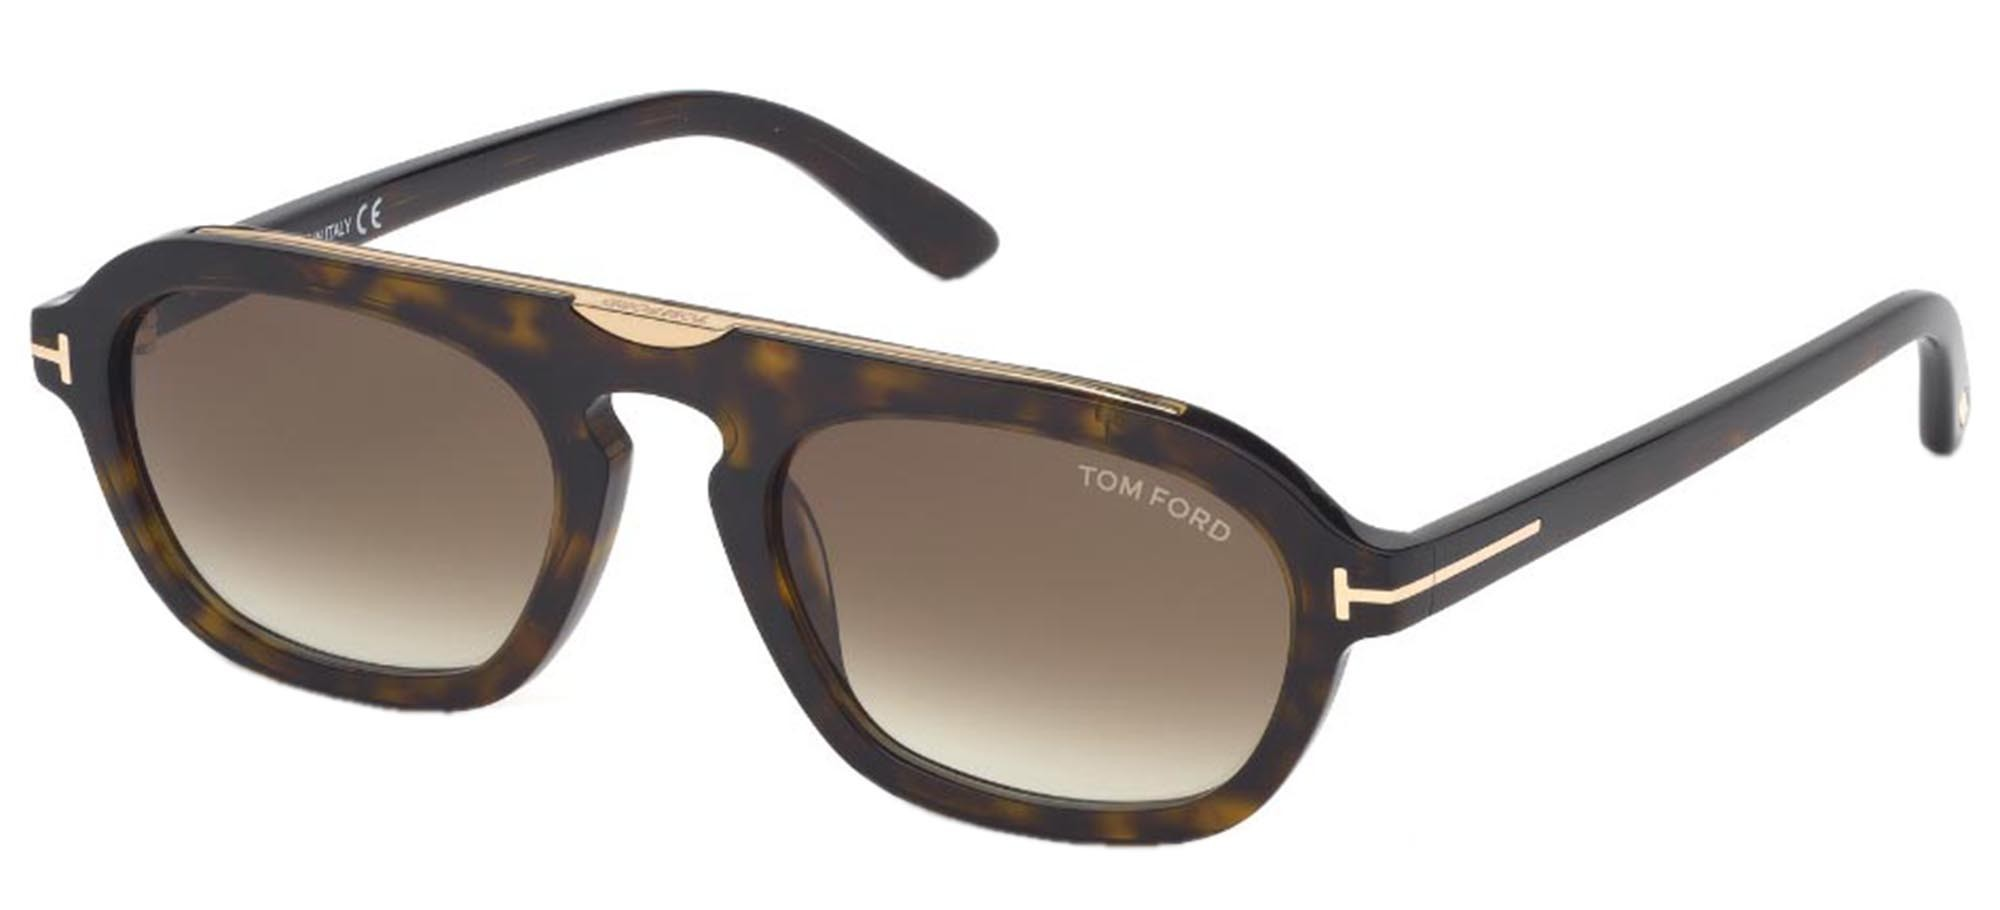 Tom Ford solbriller SEBASTIAN-02 FT 0736